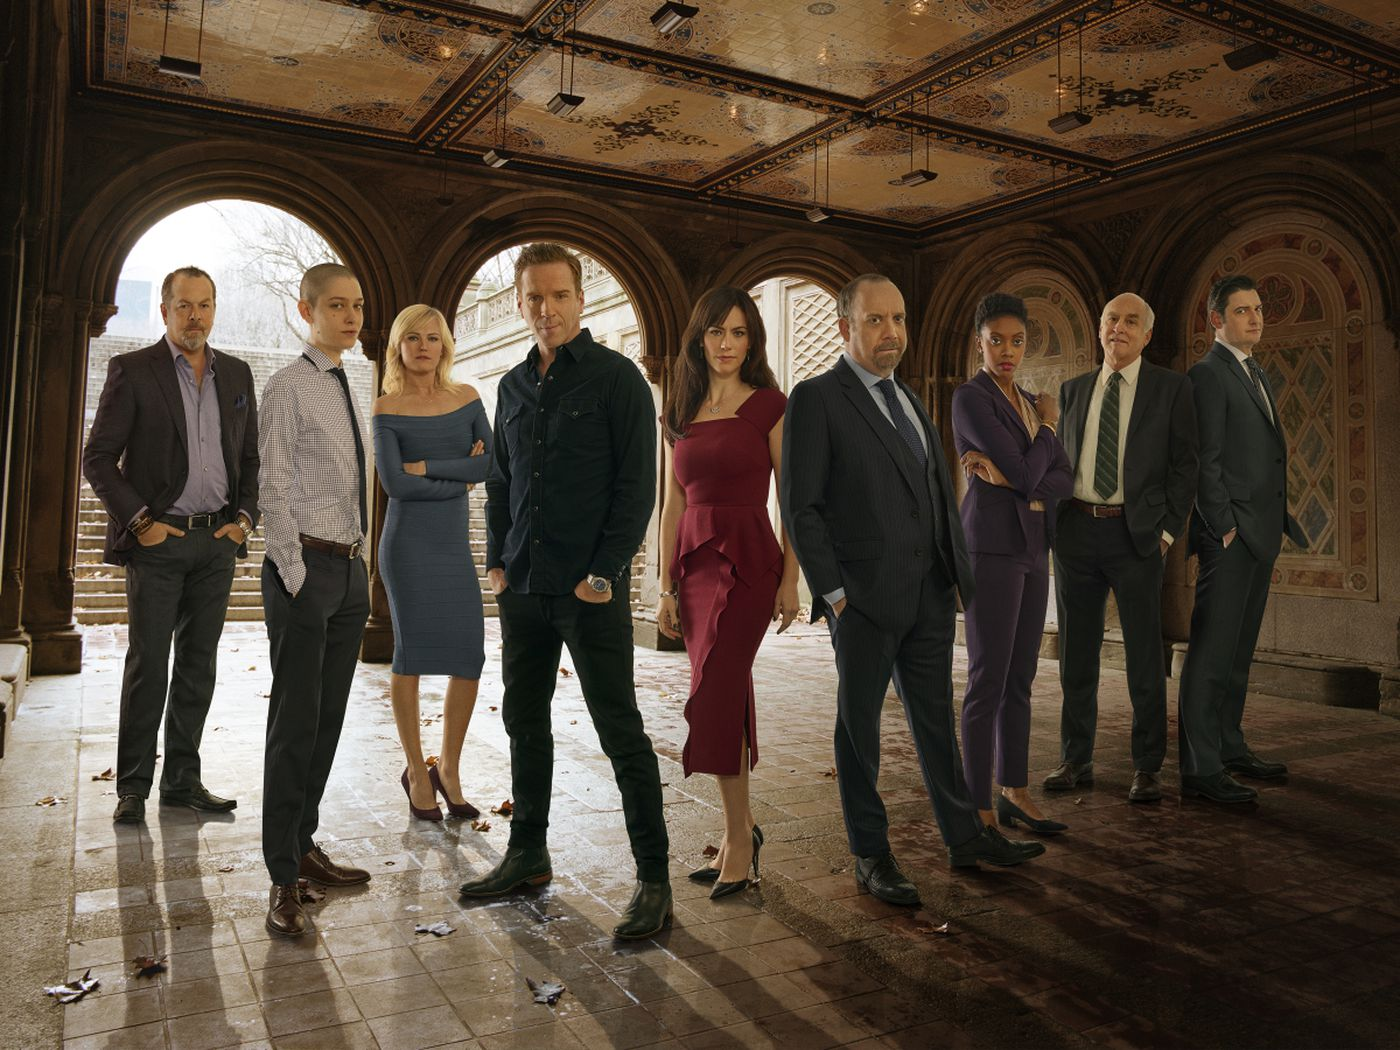 Billions season finale: how Showtime's drama went from dull